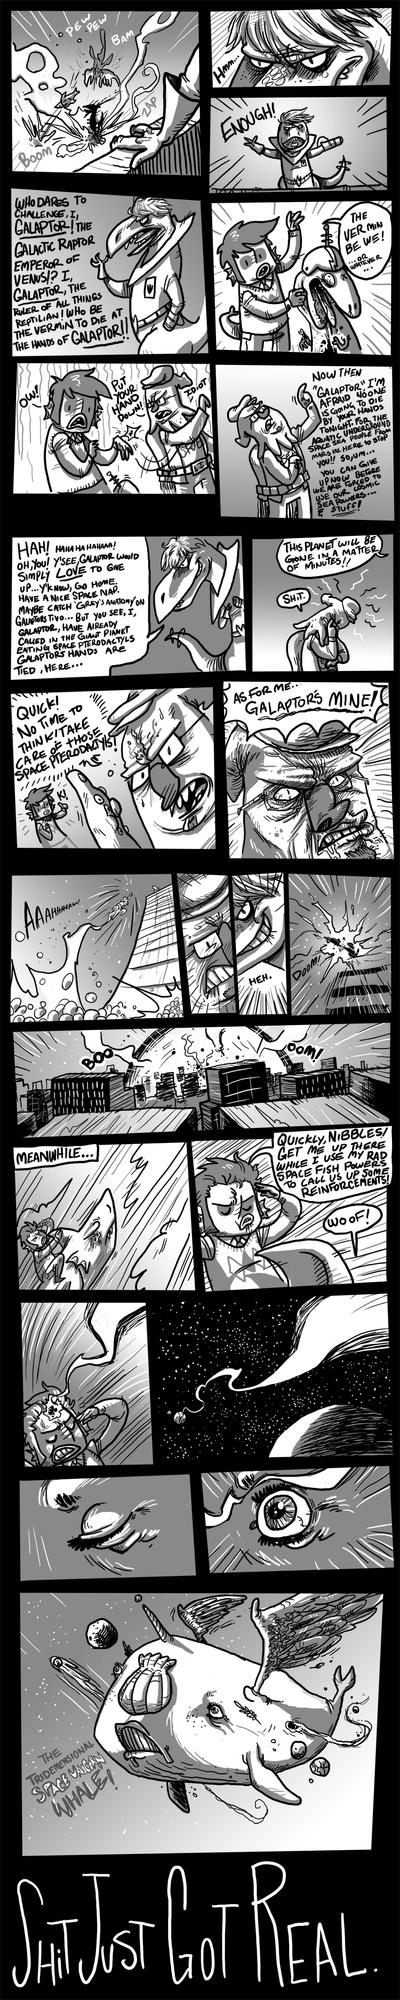 TAUSSPFM Page 3 by vidiot17